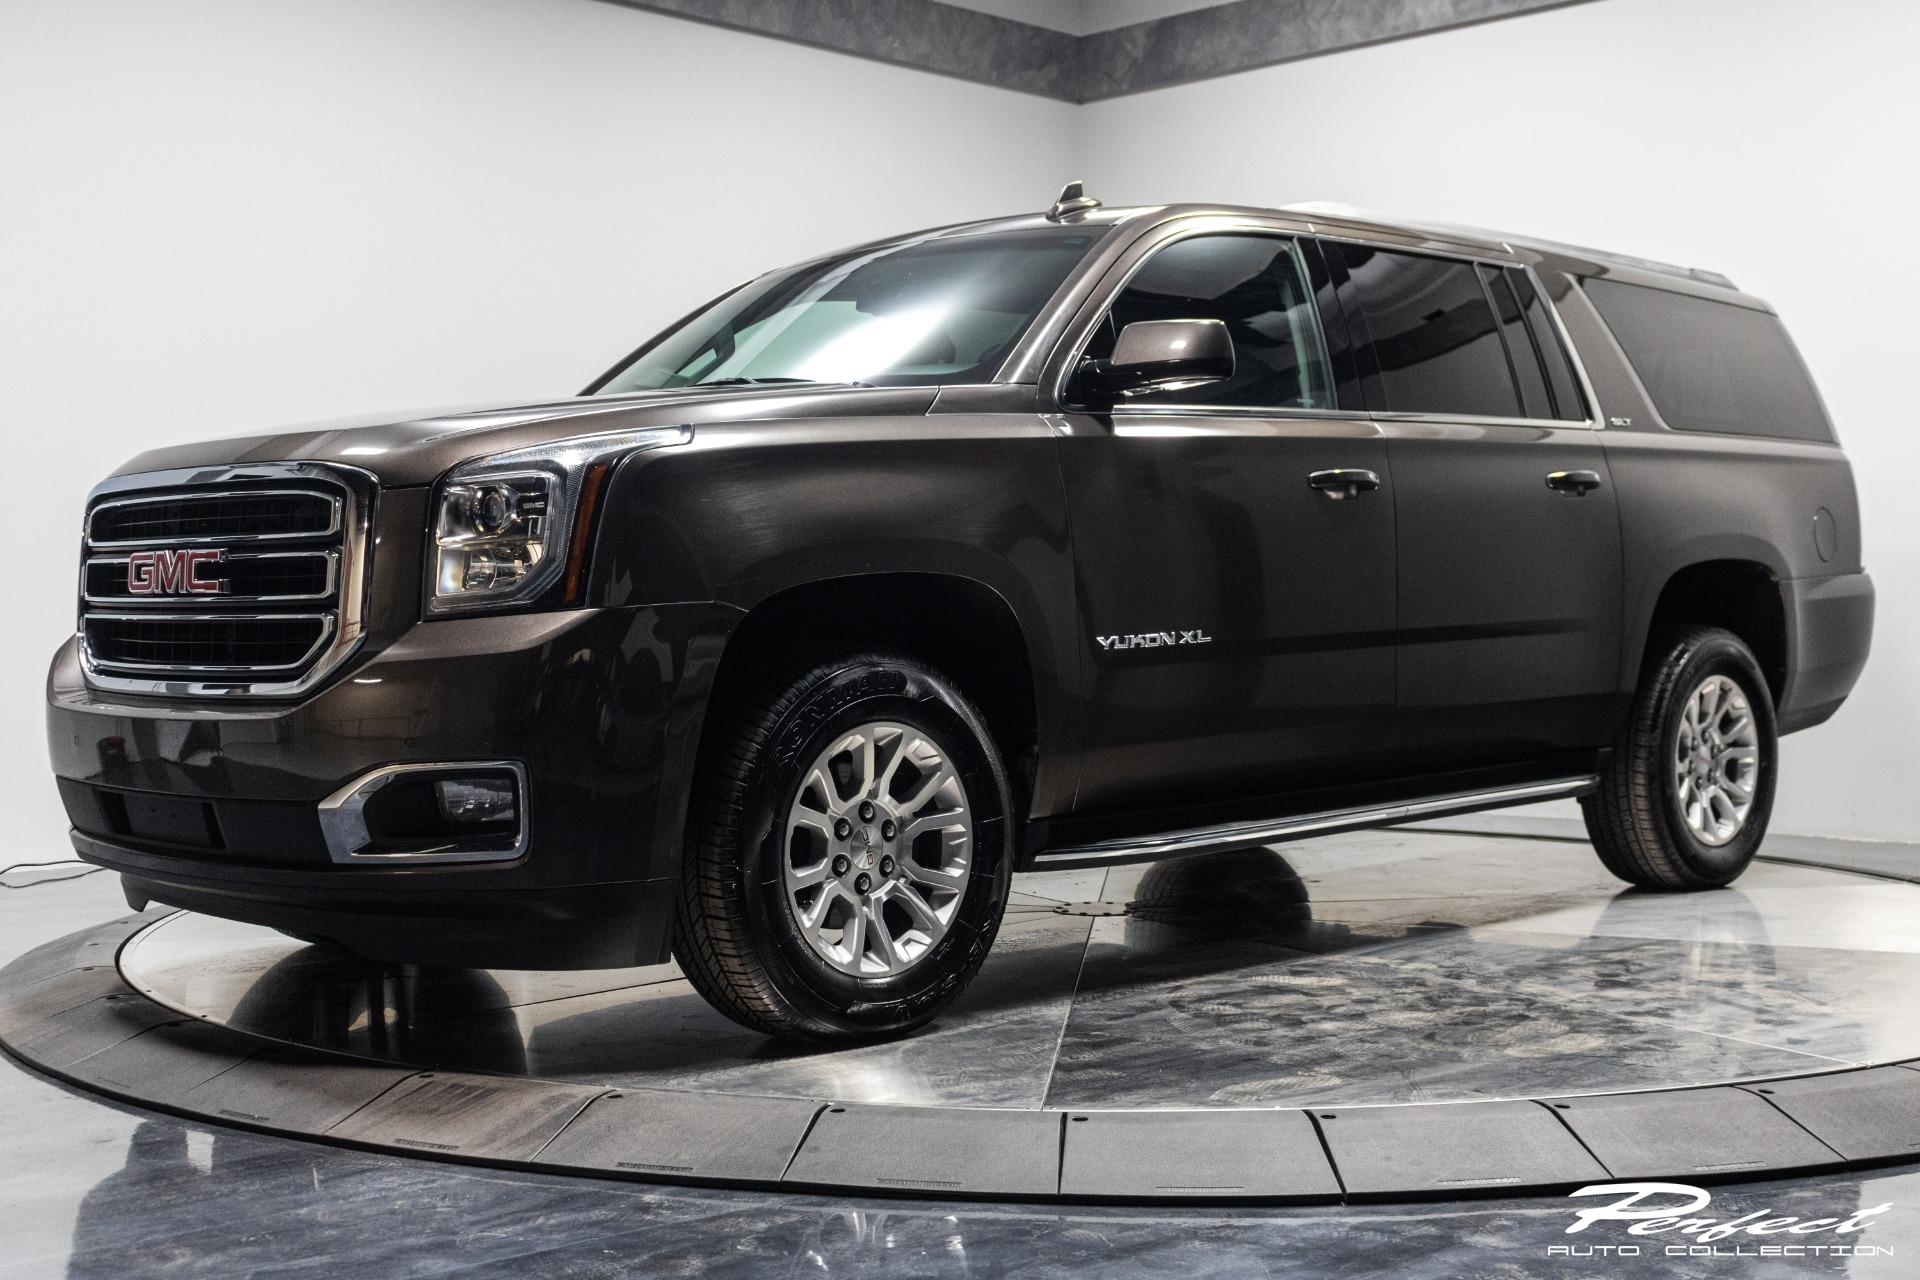 Used 2019 GMC Yukon XL SLT 1500 for sale Sold at Perfect Auto Collection in Akron OH 44310 1